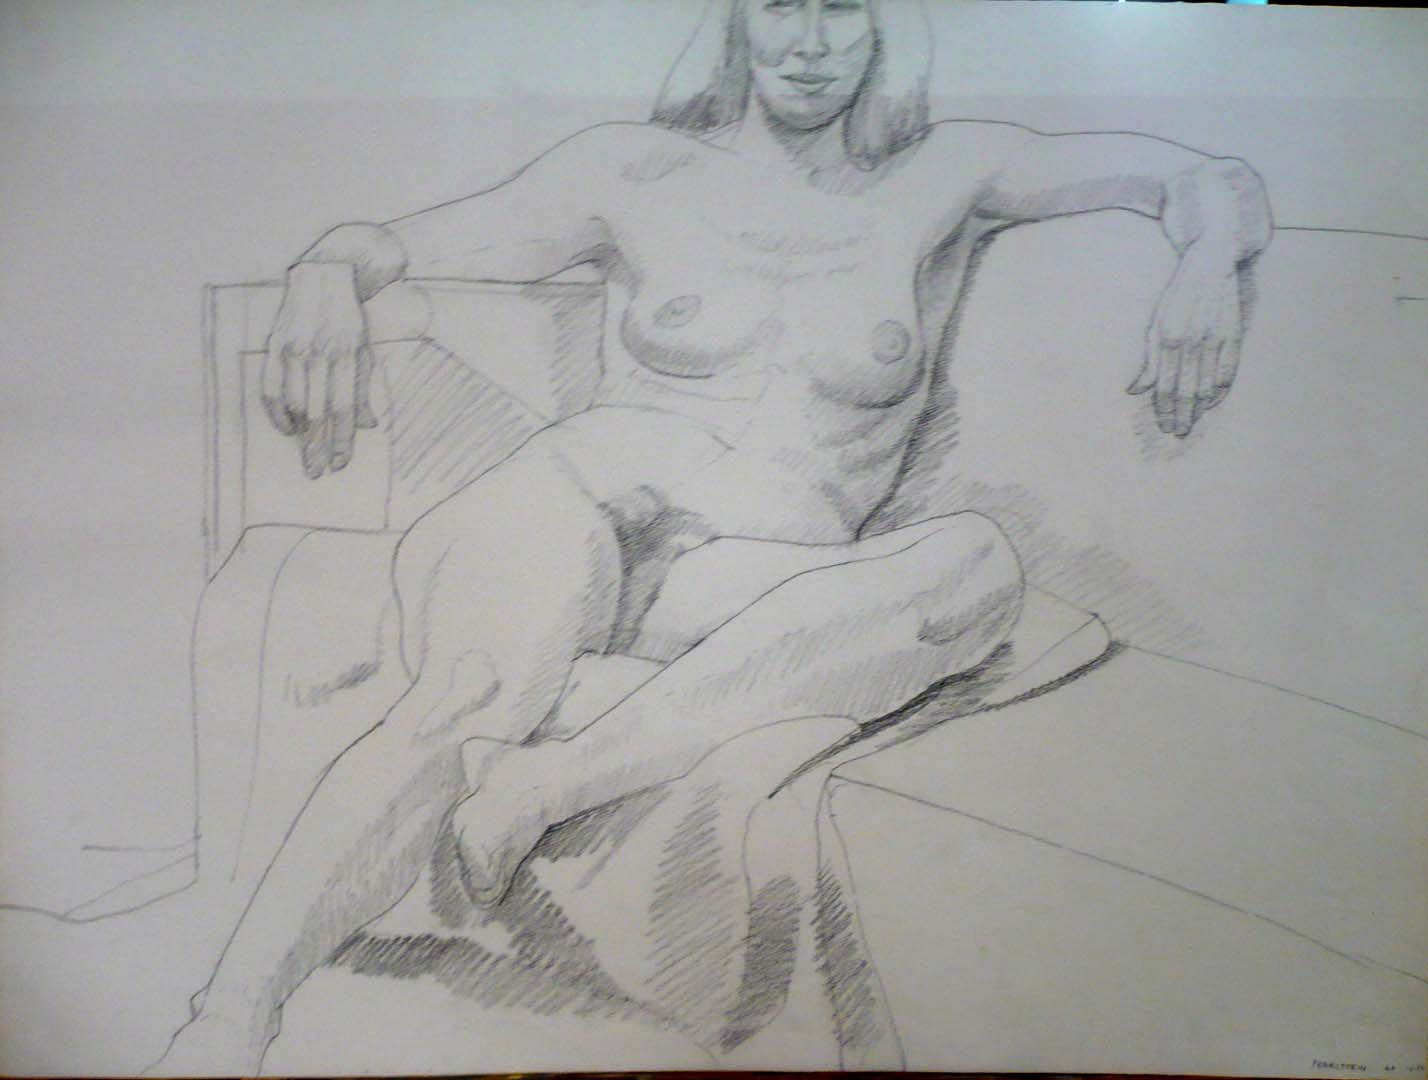 "1969 Female Model Leaning Pencil 22.125"" x 29.875"""